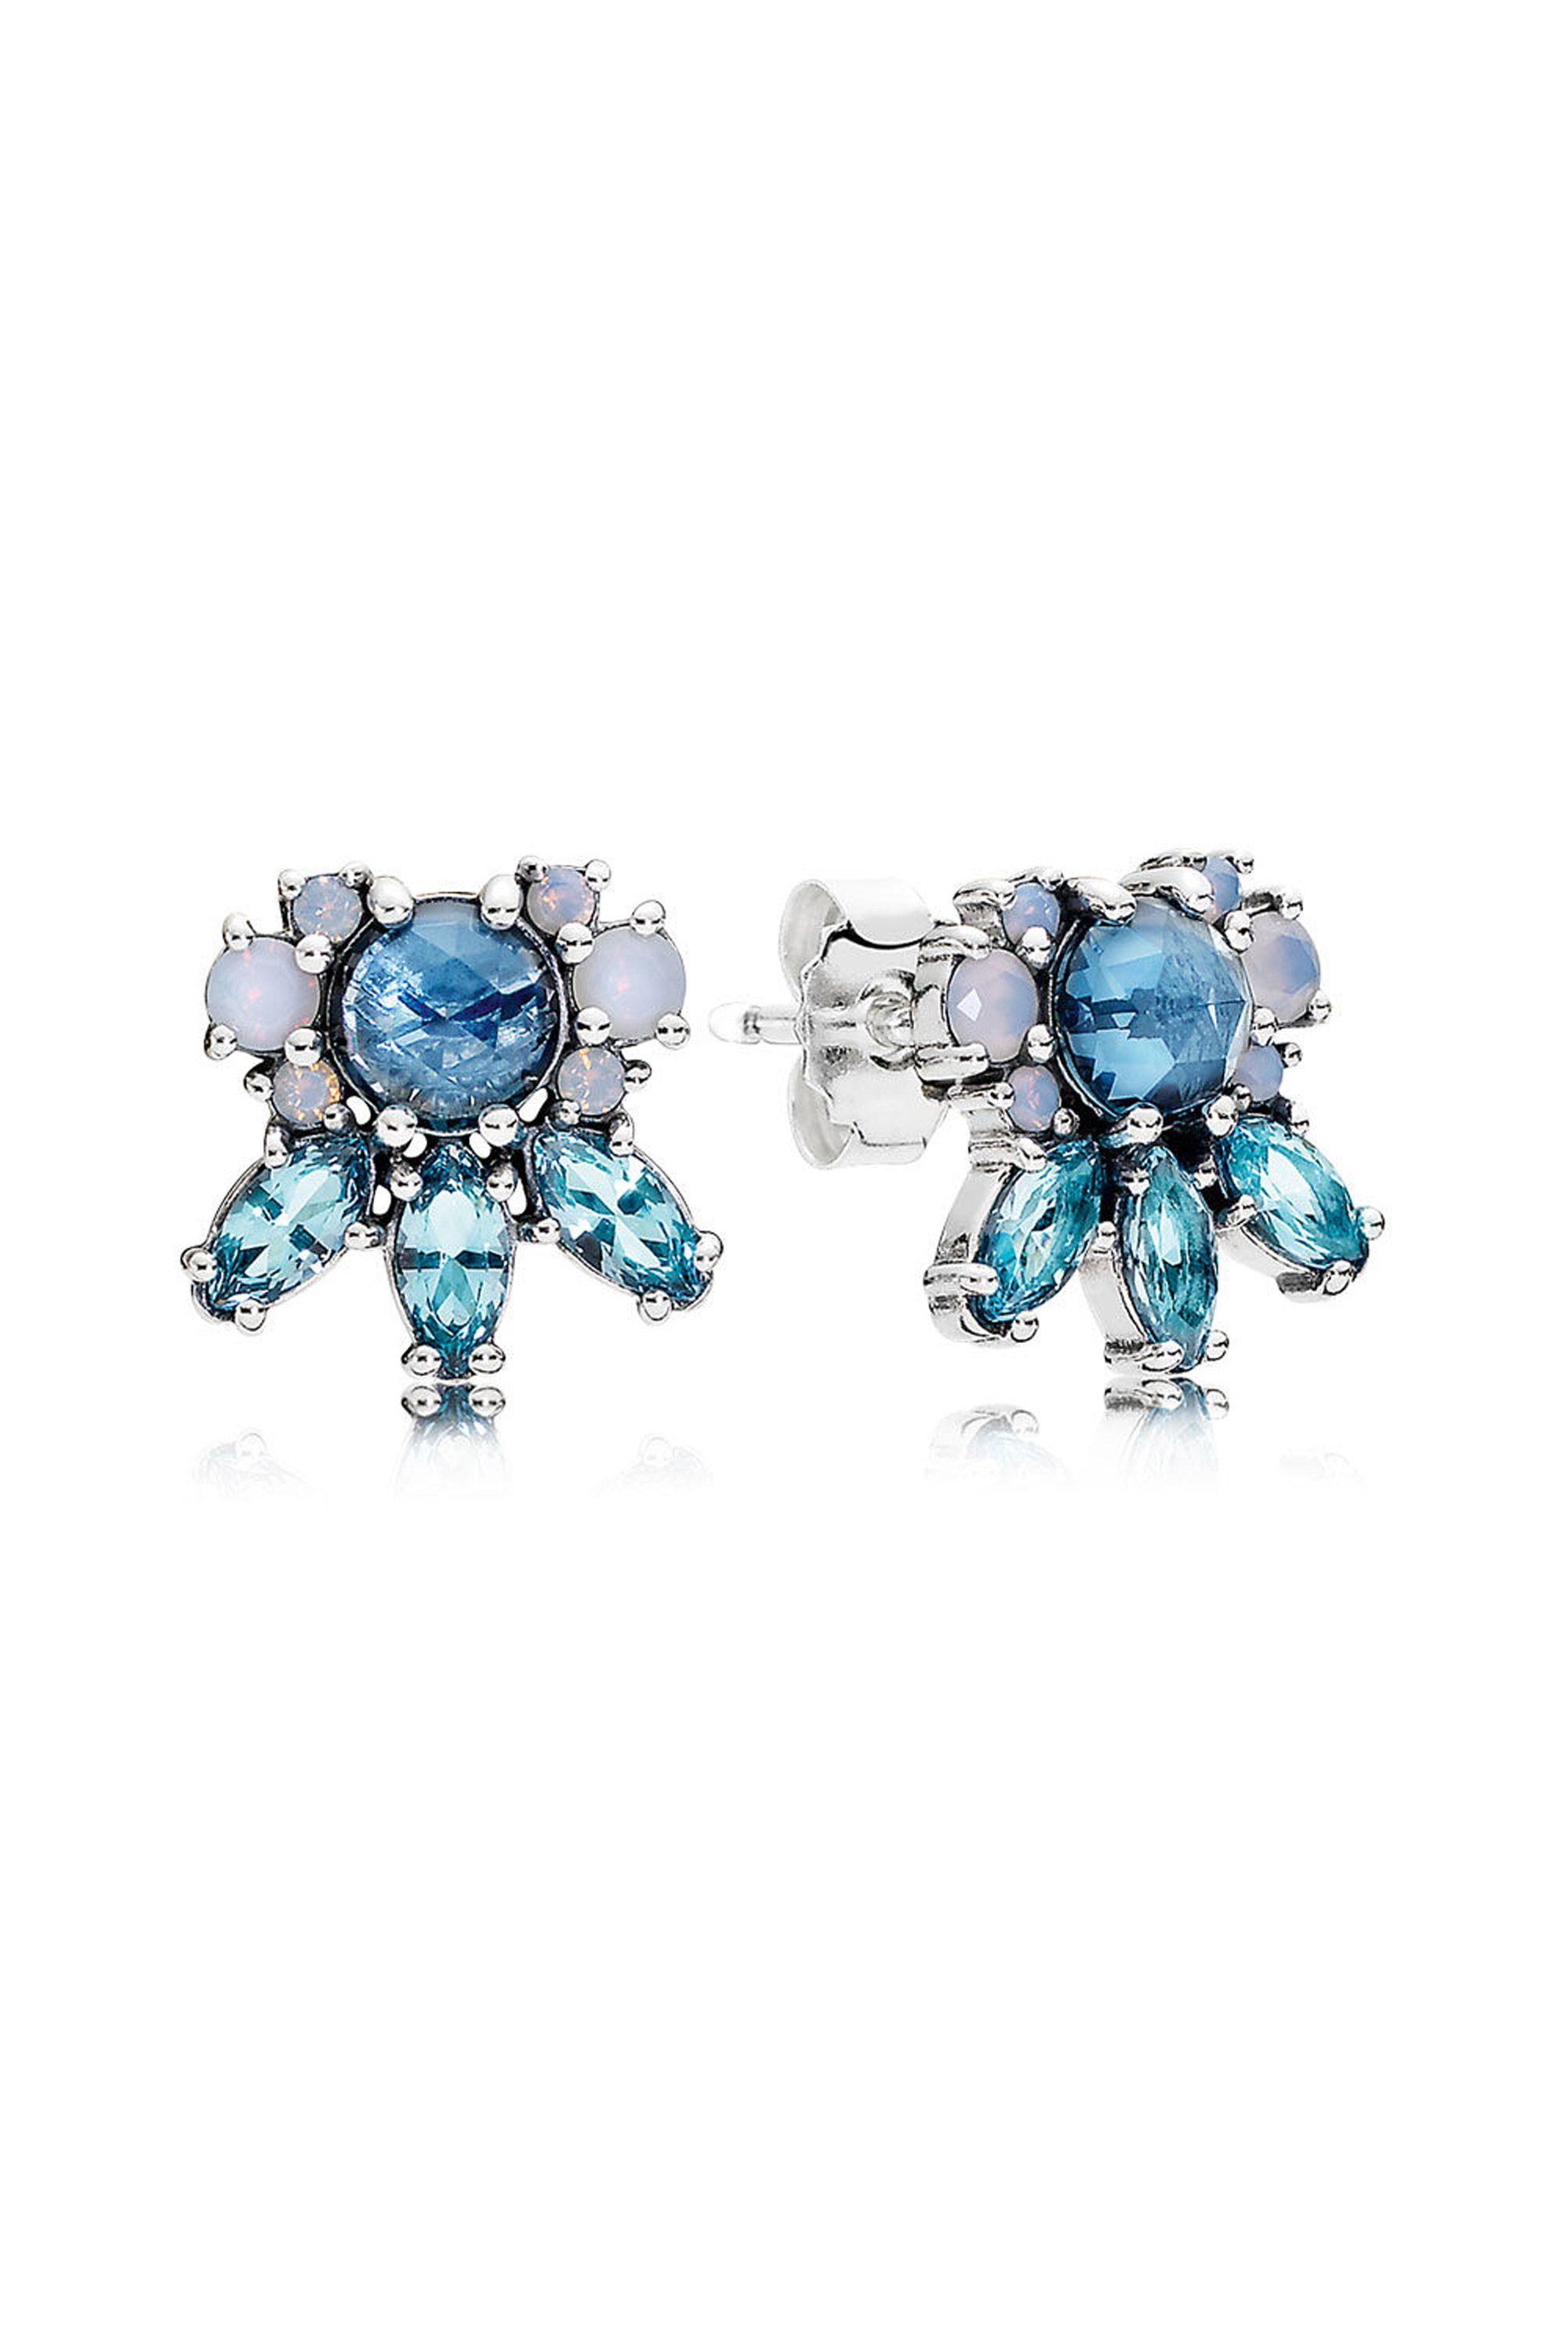 "<p>She'll always remember the jewelry you give her, especially at the holidays. These sparkly little studs go with everything from formal wear to cozy sweaters. </p>  <p><em data-redactor-tag=""em"" data-verified=""redactor"">$75, </em><a href=""https://estore-us.pandora.net/en-us/patterns-of-frost-multi-colored-crystal/290731NMBMX.html?cid=BrndMedia_Drop6_Dec_2016_Esquire_CustomContent_CoBrandedGiftGuide_PatternsOfFrost_Earring_290731NMBMX_PDP_Product"" target=""_blank"" data-tracking-id=""recirc-text-link""><em data-redactor-tag=""em"" data-verified=""redactor"" data-tracking-id=""recirc-text-link"">pandora.net</em></a></p>"